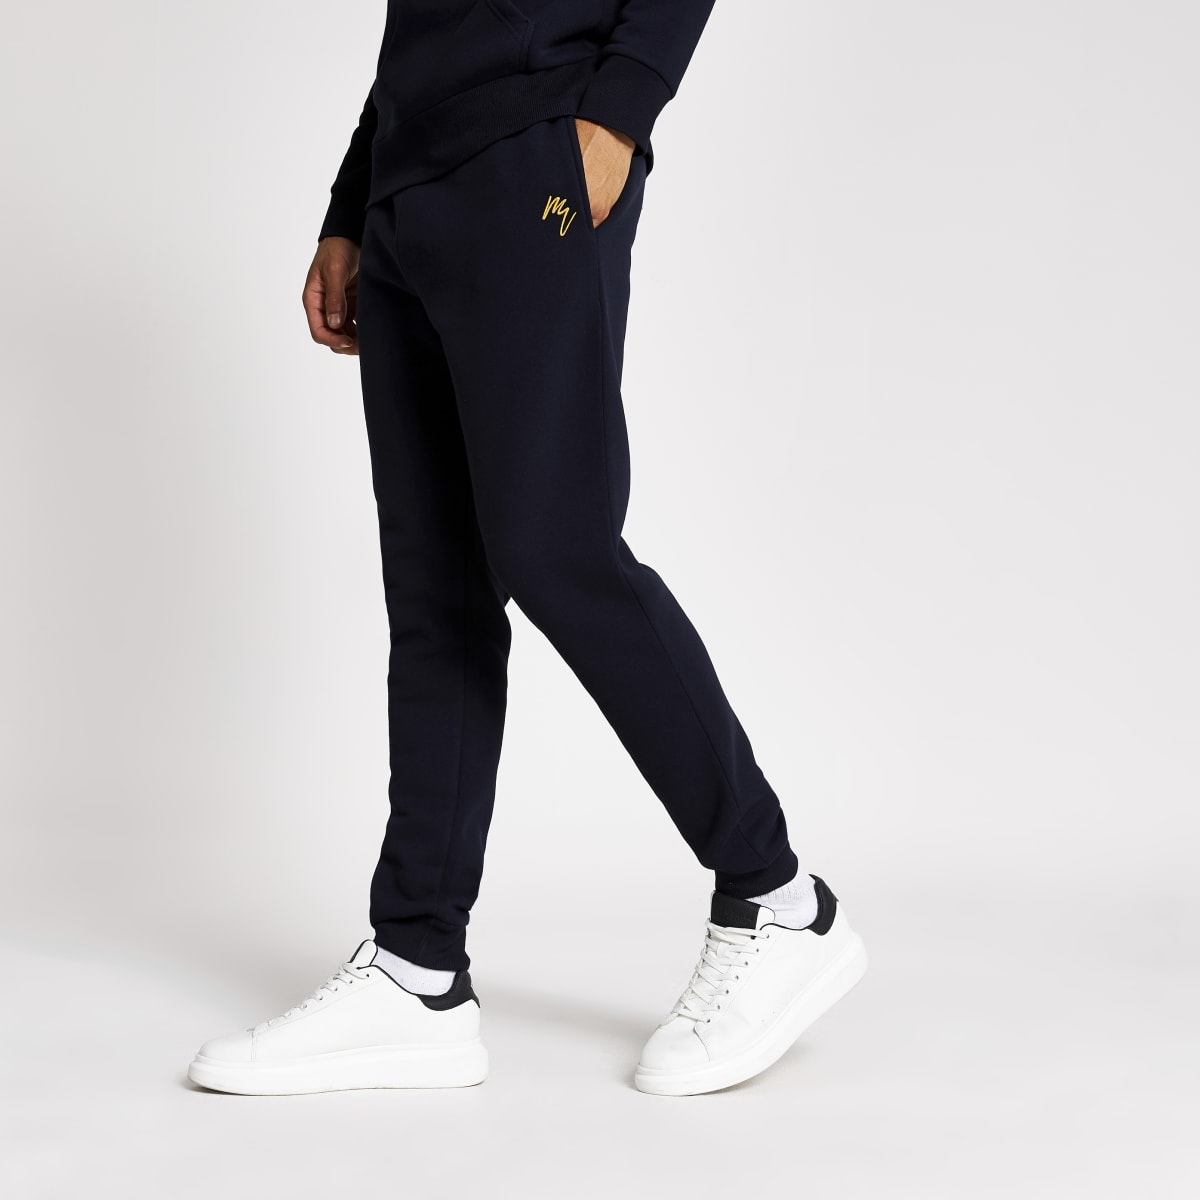 Navy Maison Riviera muscle fit joggers